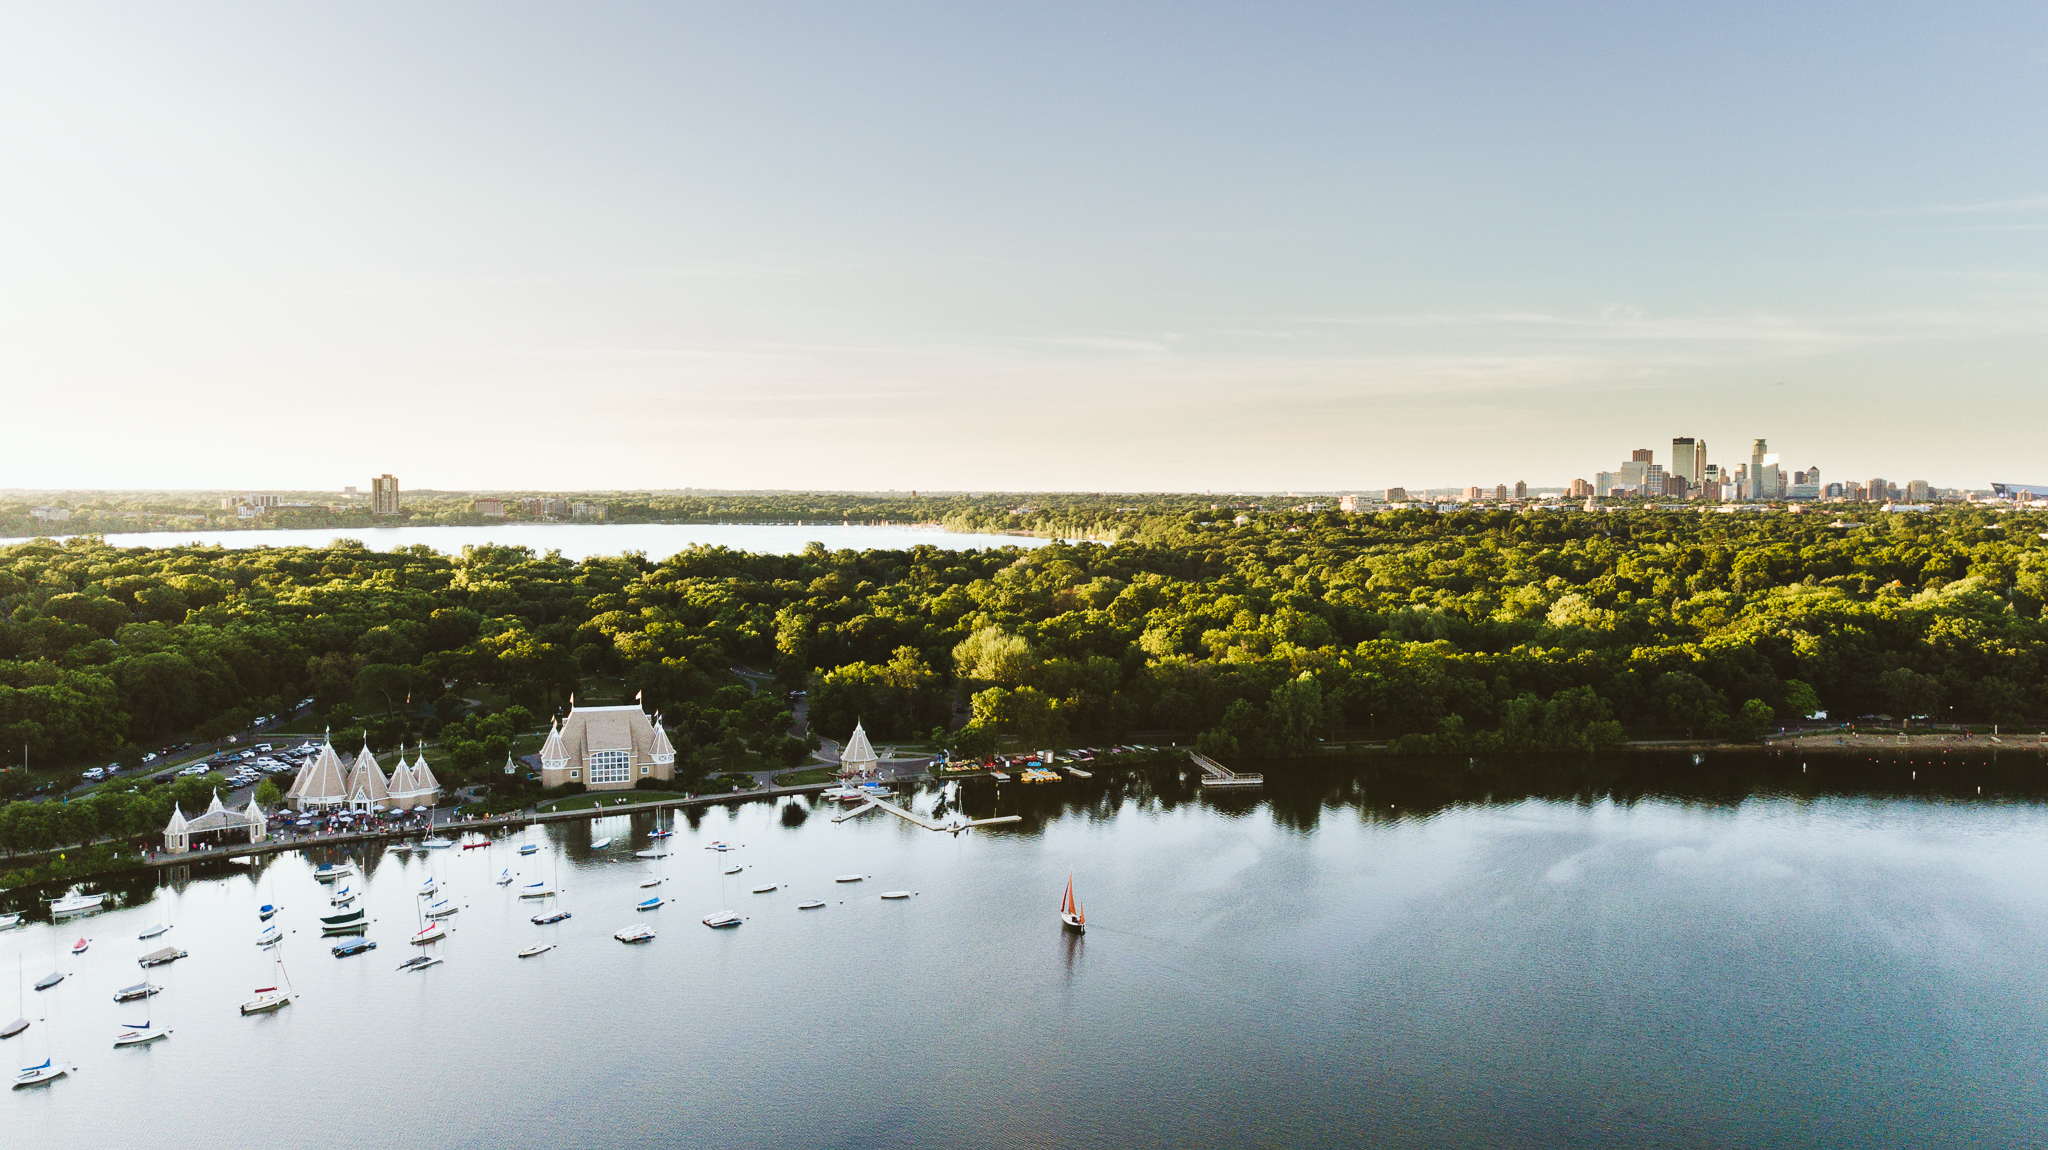 Drone photography over Lake Harriet in Minneapolis Minnesota